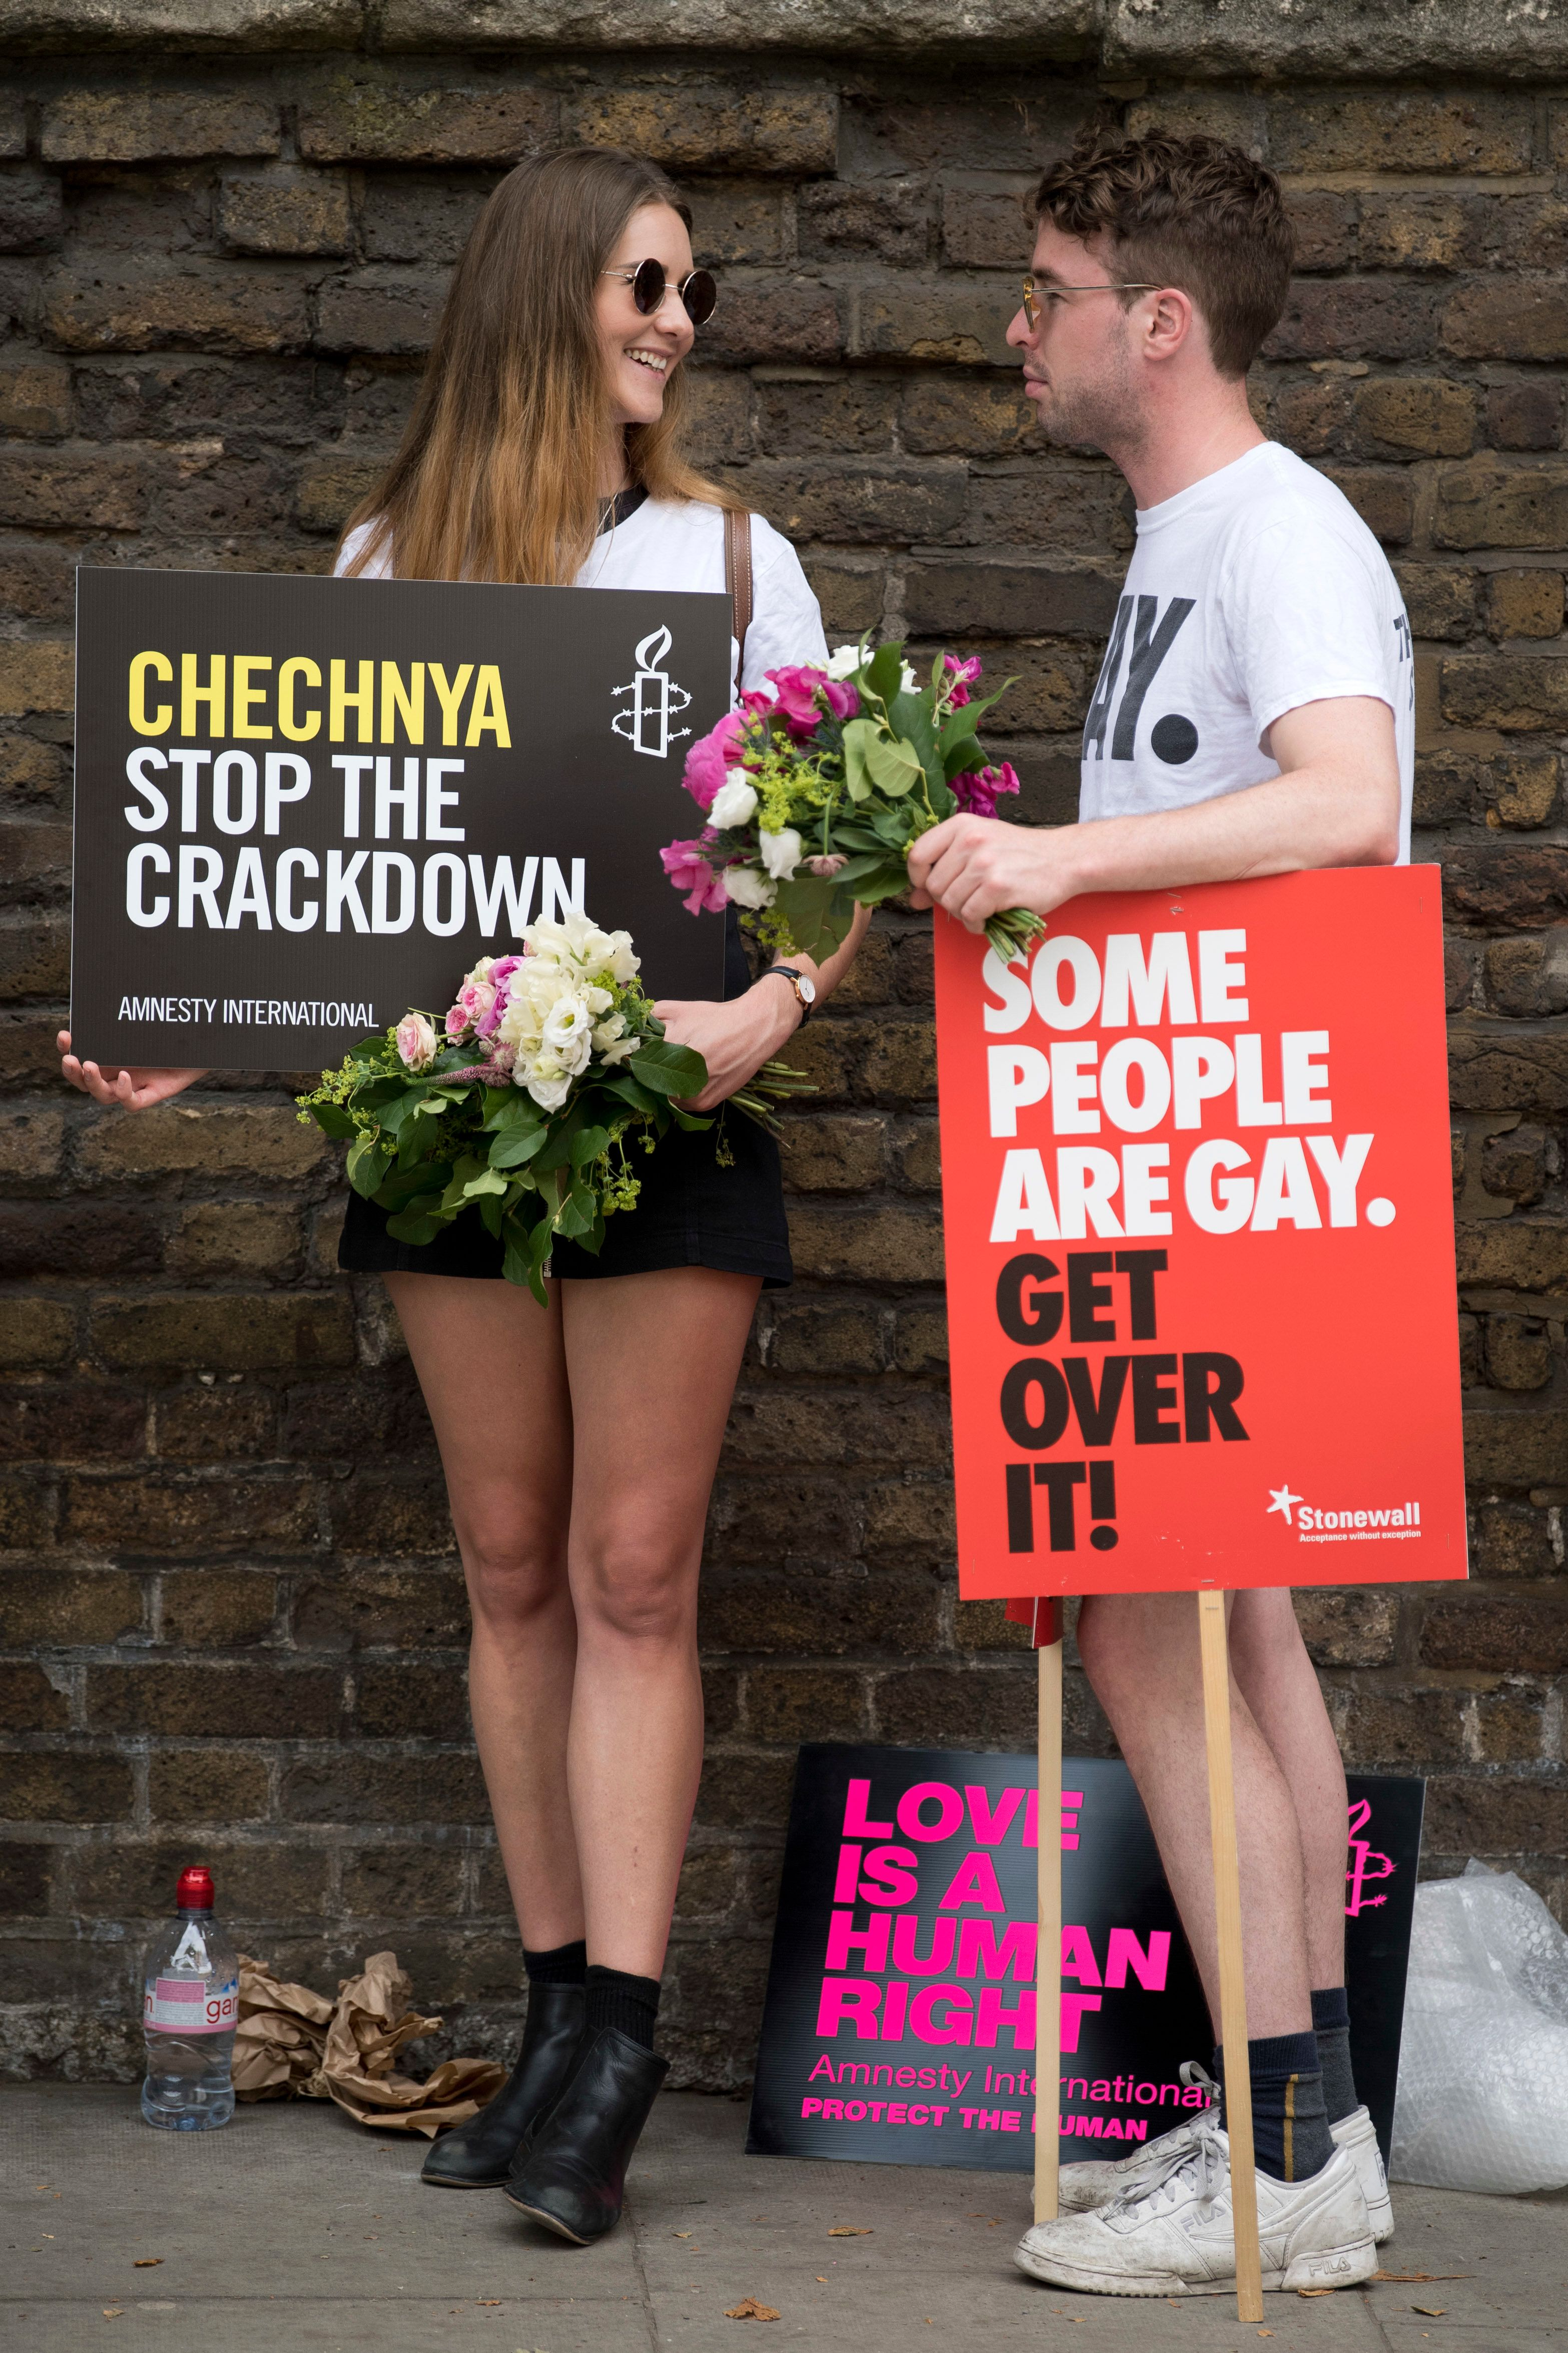 Several LGBTQ People Reportedly Detained In Russia's Chechnya Region